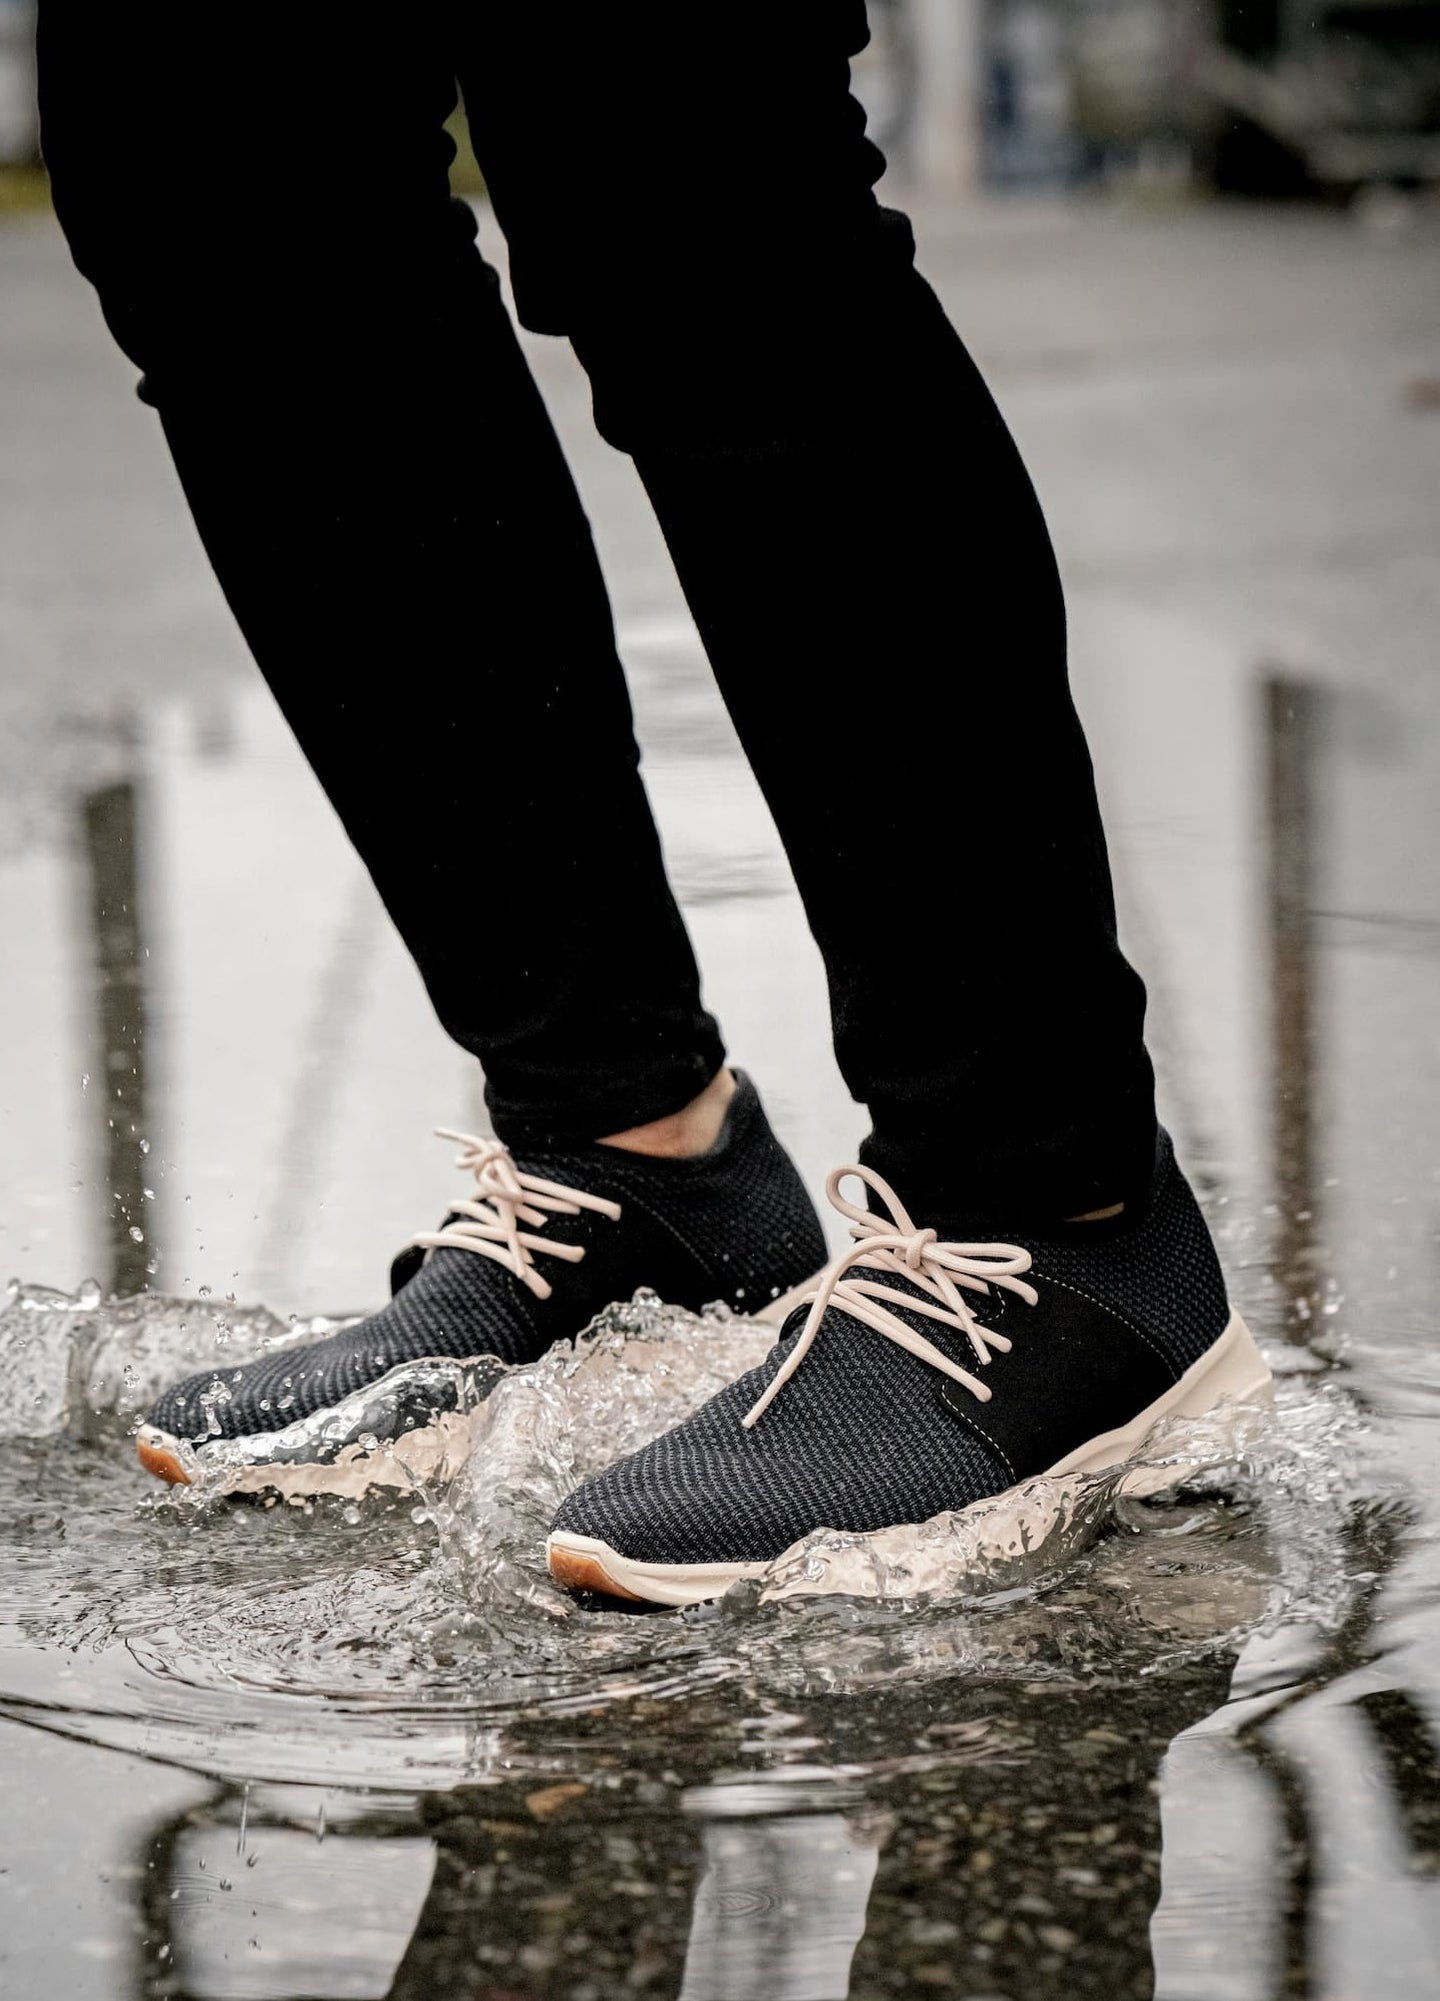 RAIN PROOF SHOES? HEKK YES!